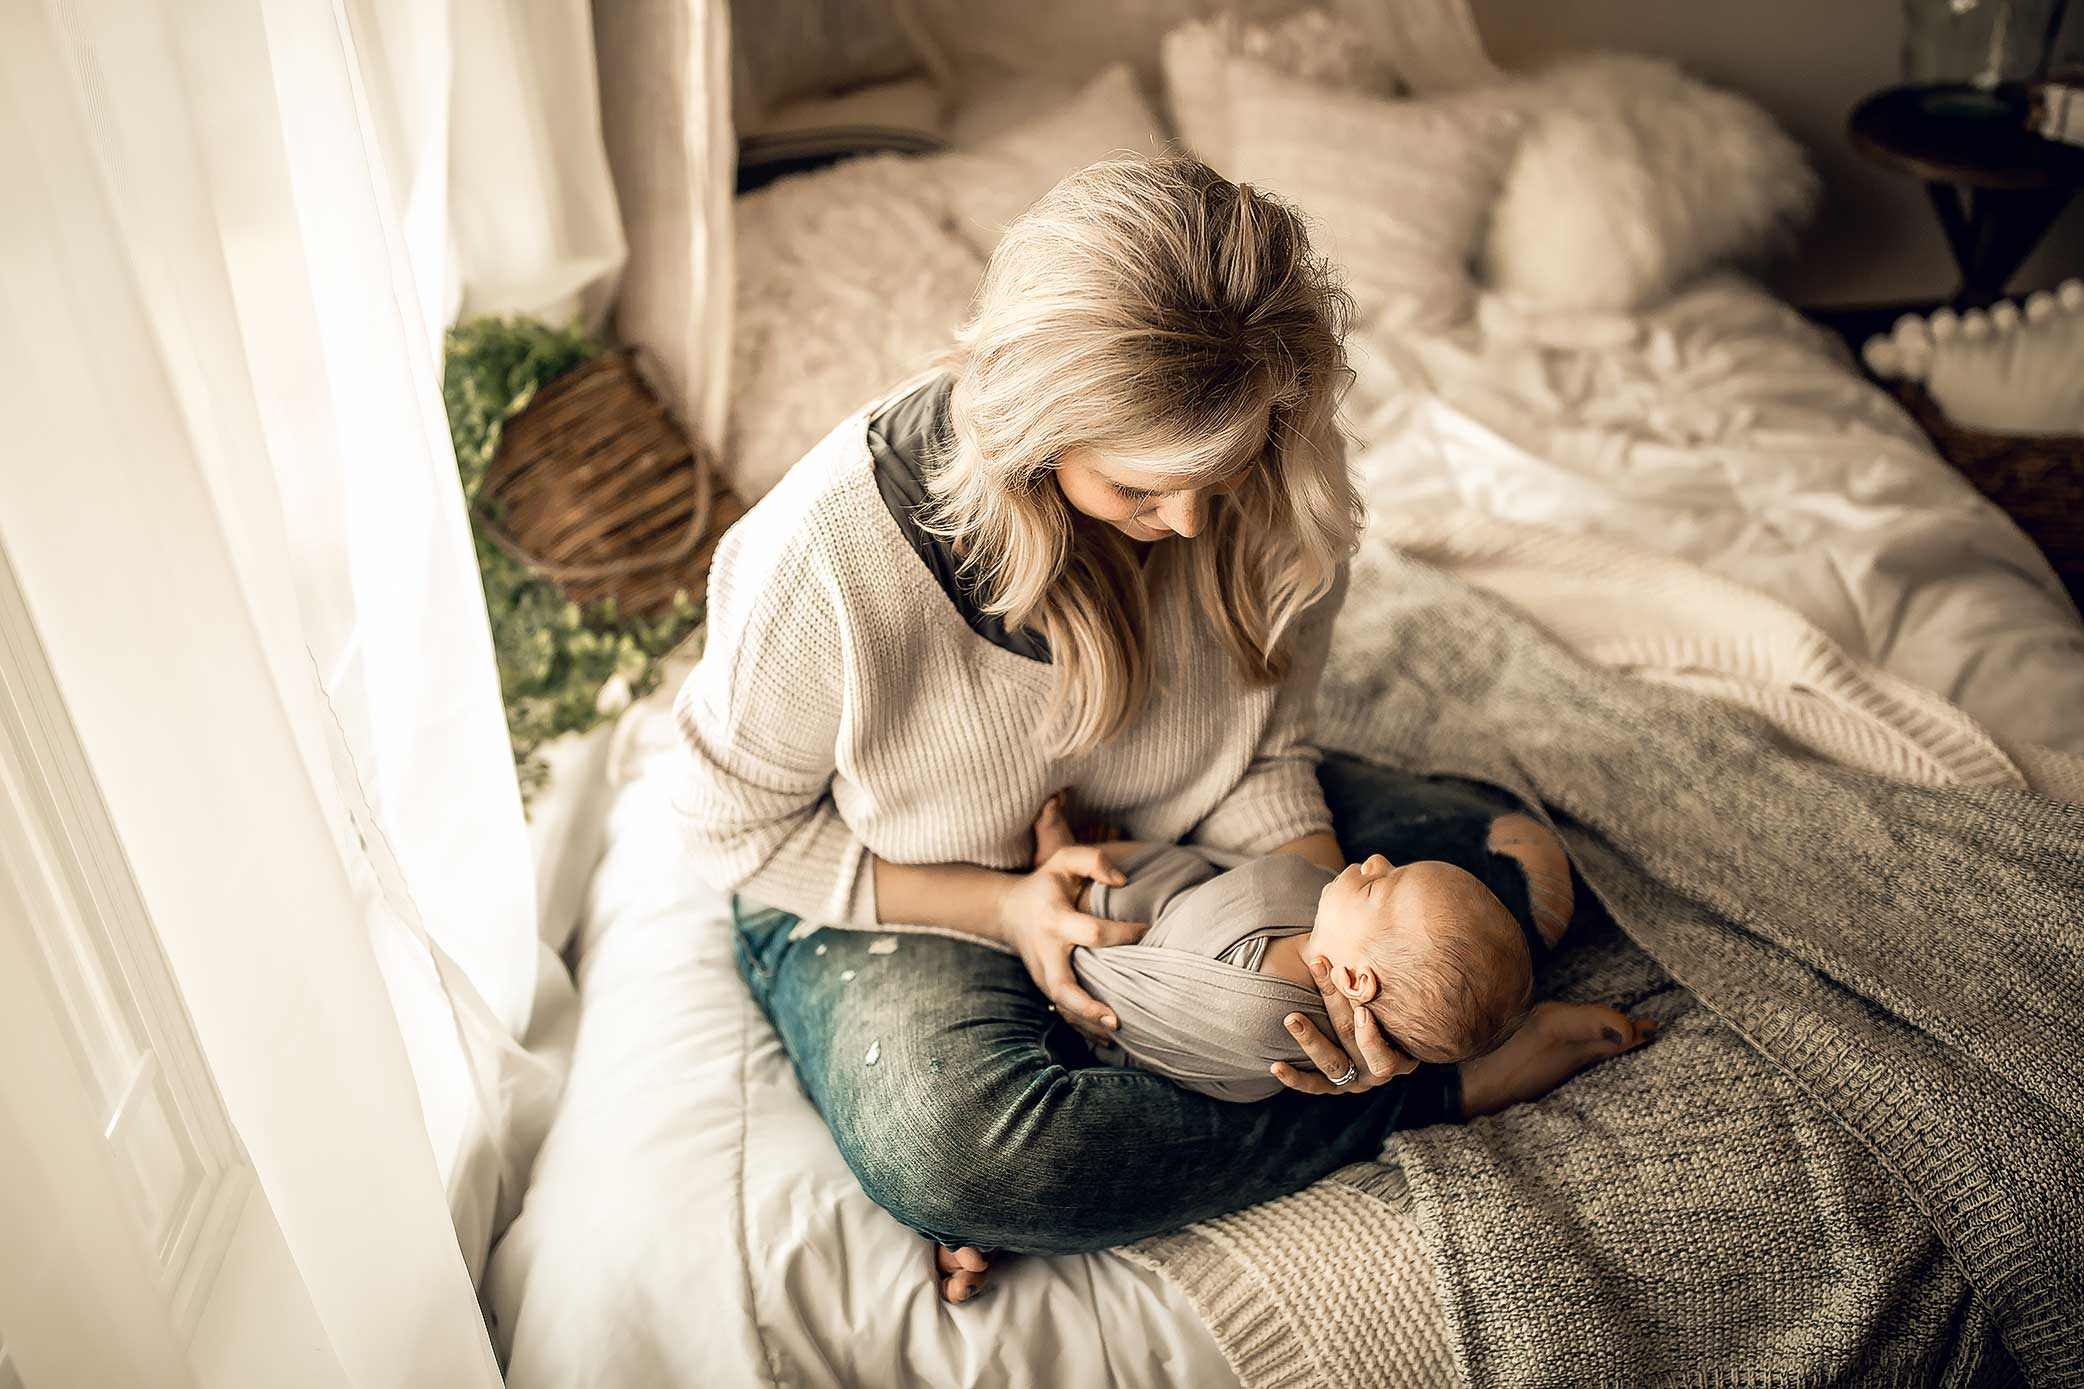 shelby-schiller-photography-lifestyle-newborn-mom-holding-baby-sitting-on-bed.jpg